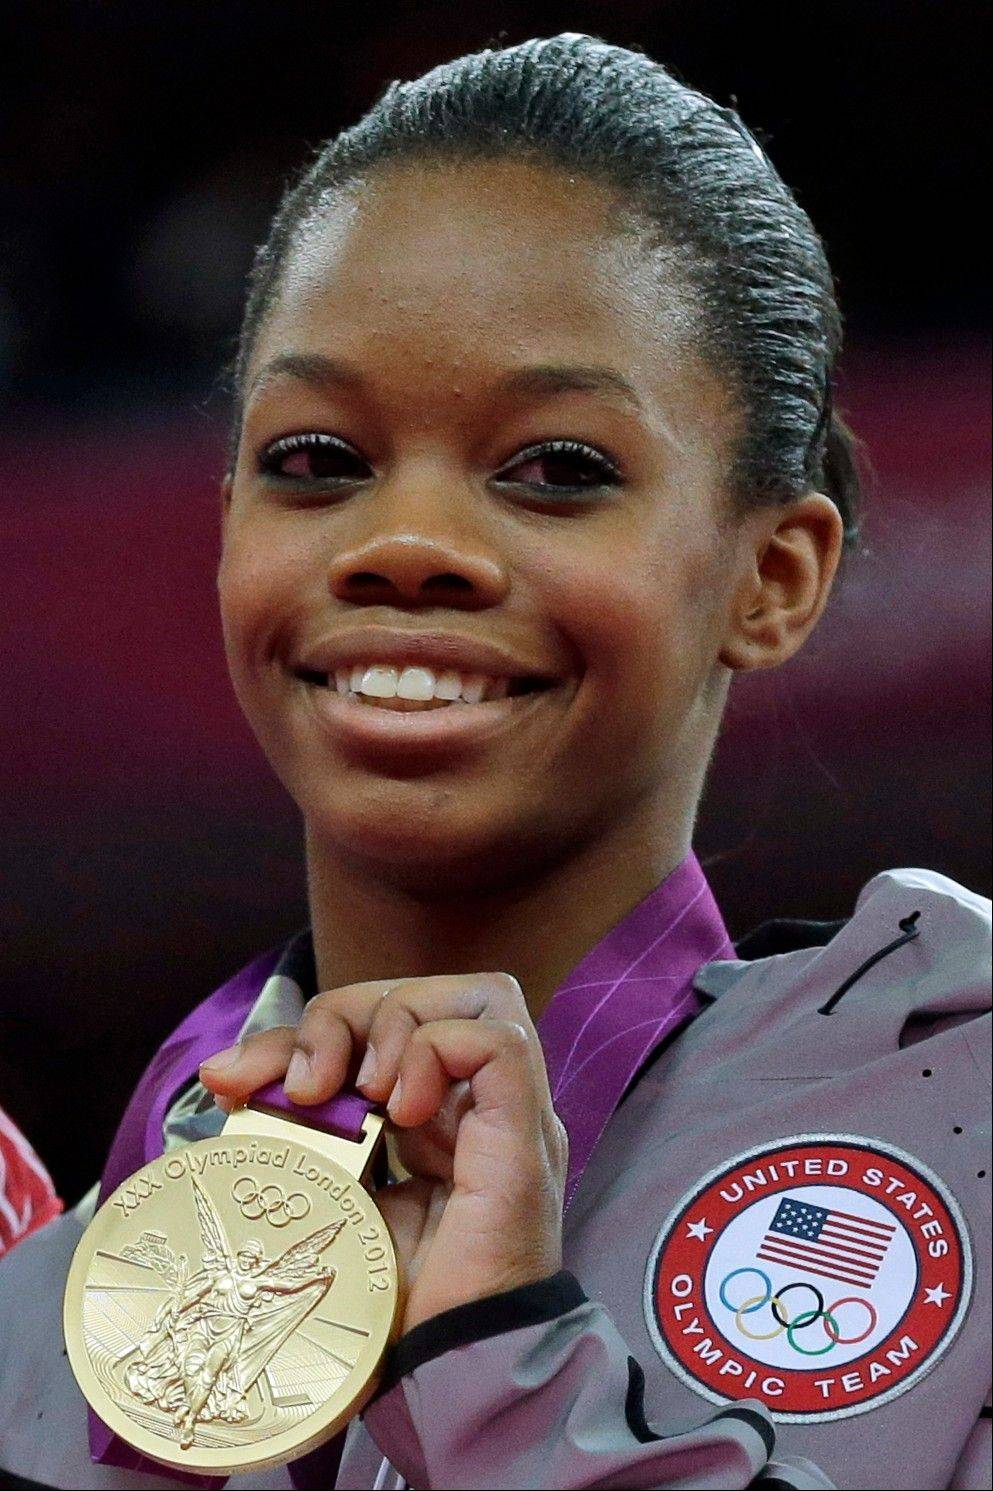 Gold-medal winning U.S. gymnast Gabrielle Douglas will sign copies of her new memoir, �Raising the Bar,� beginning at 6:30 p.m. Thursday, May 2, at Barnes and Noble at Old Orchard Center in Skokie.